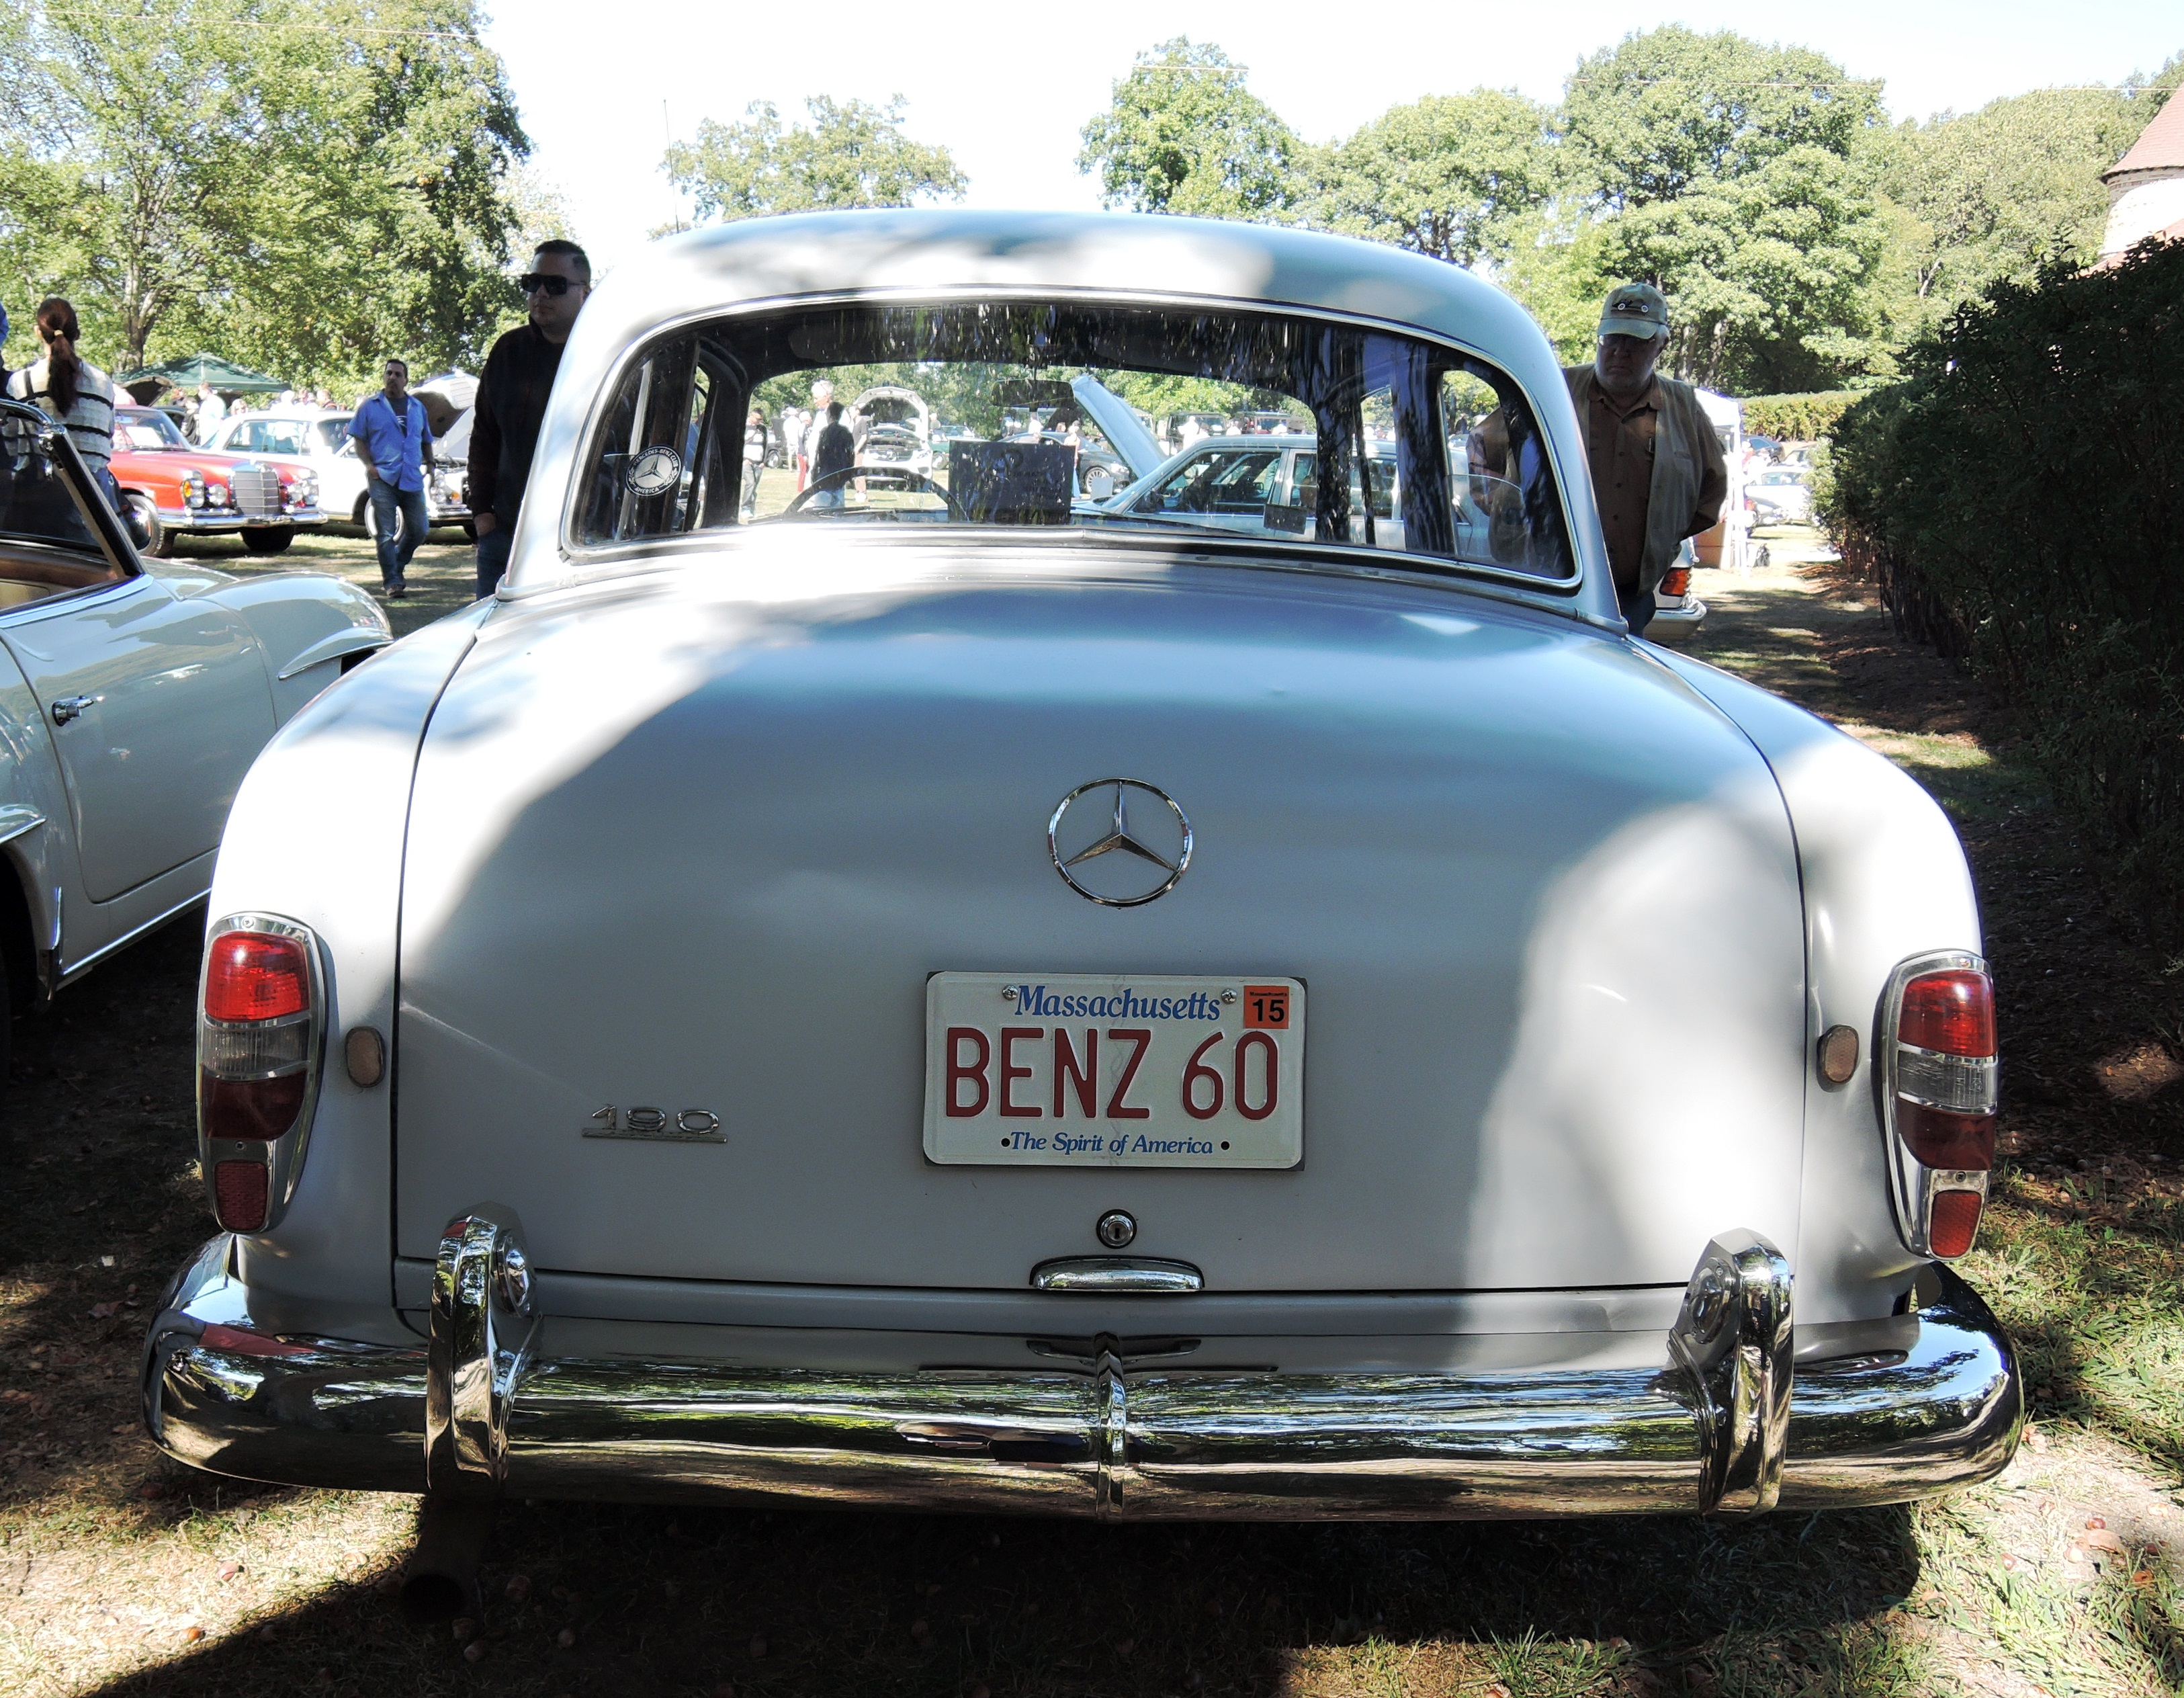 silver 1960 Mercedes-Benz 190 - vanity license plates